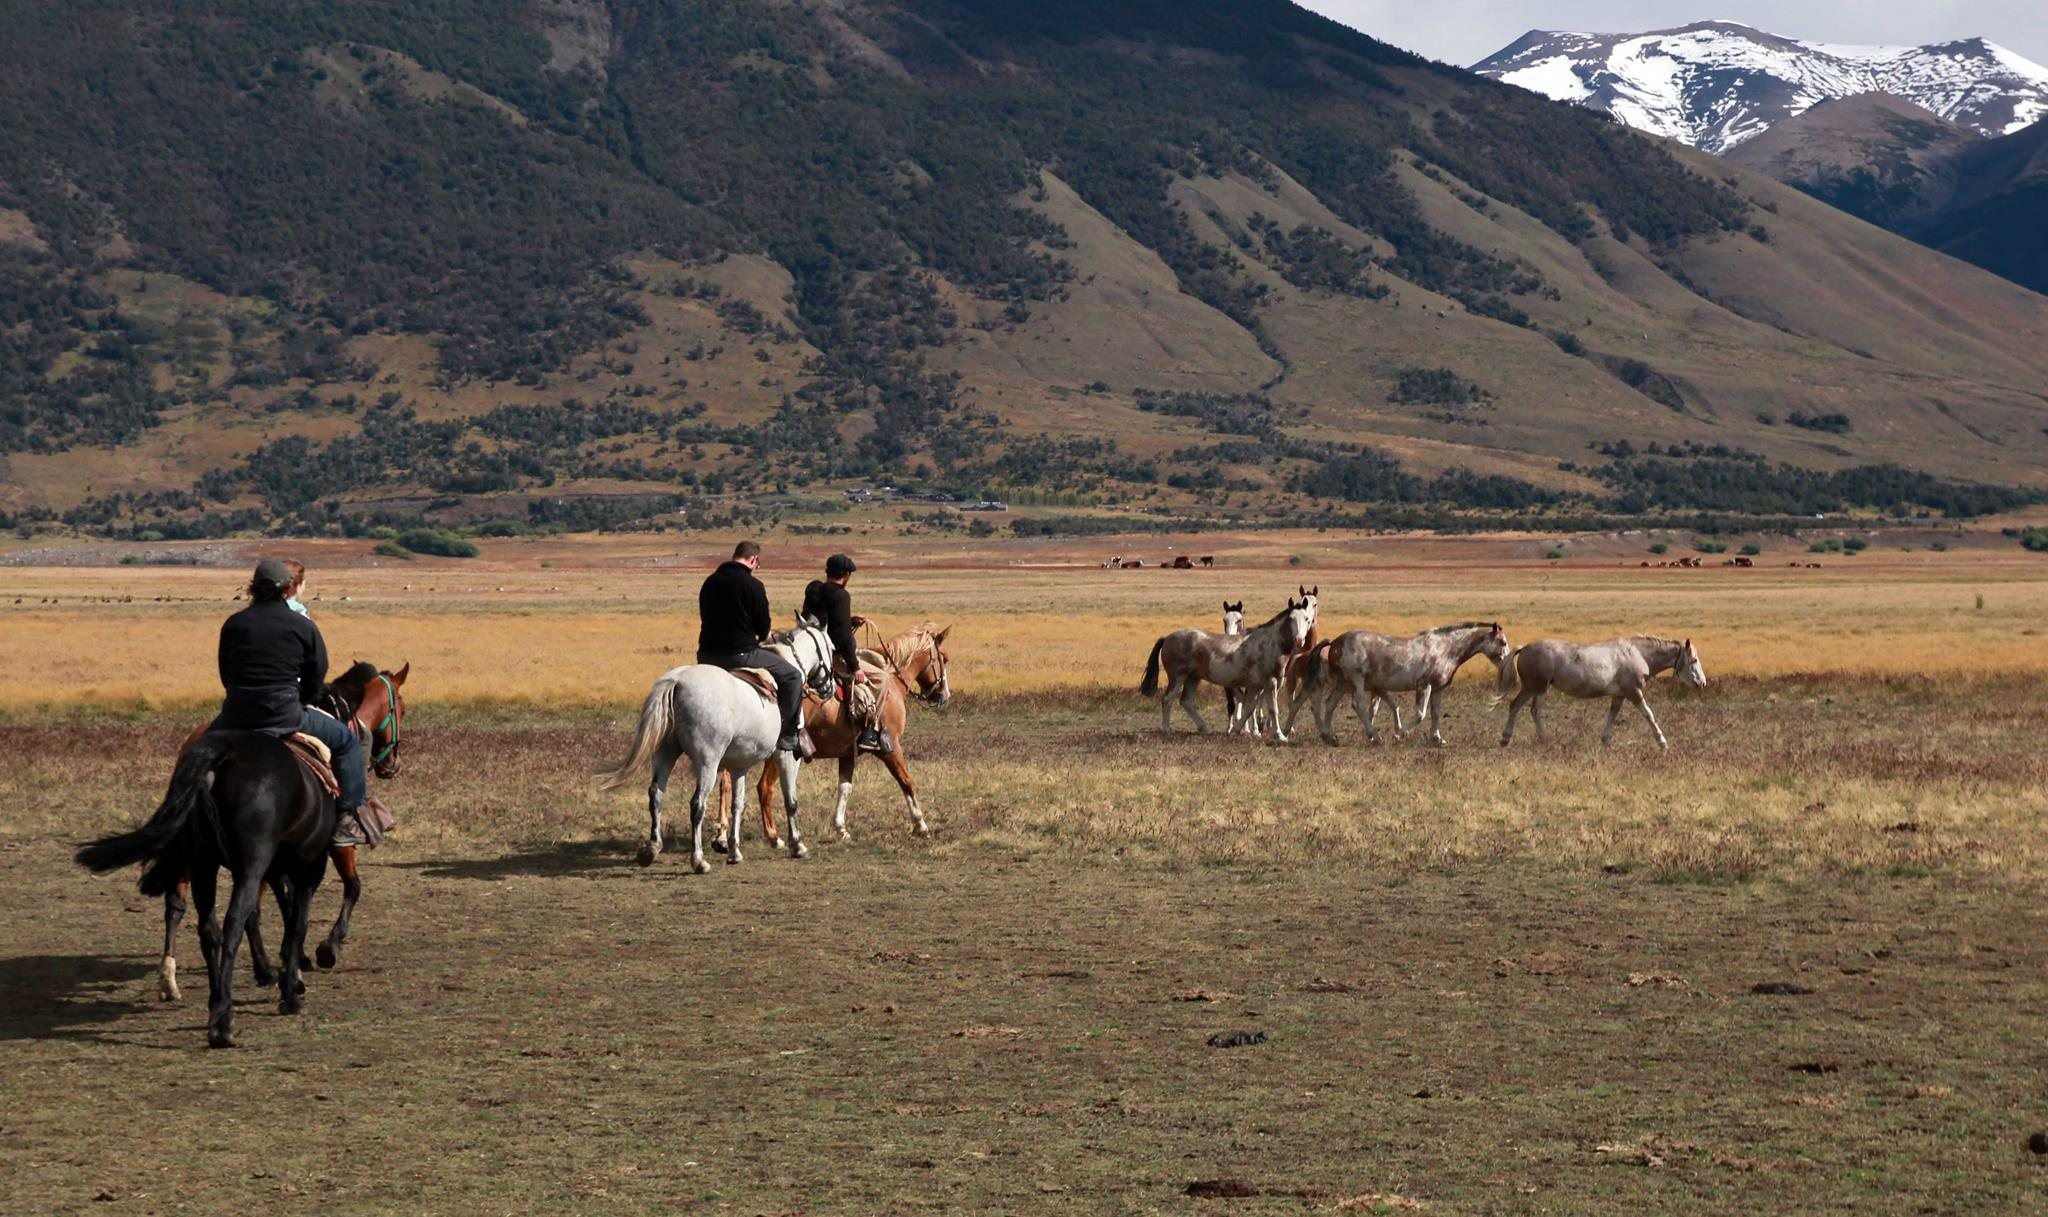 Riding the steppe